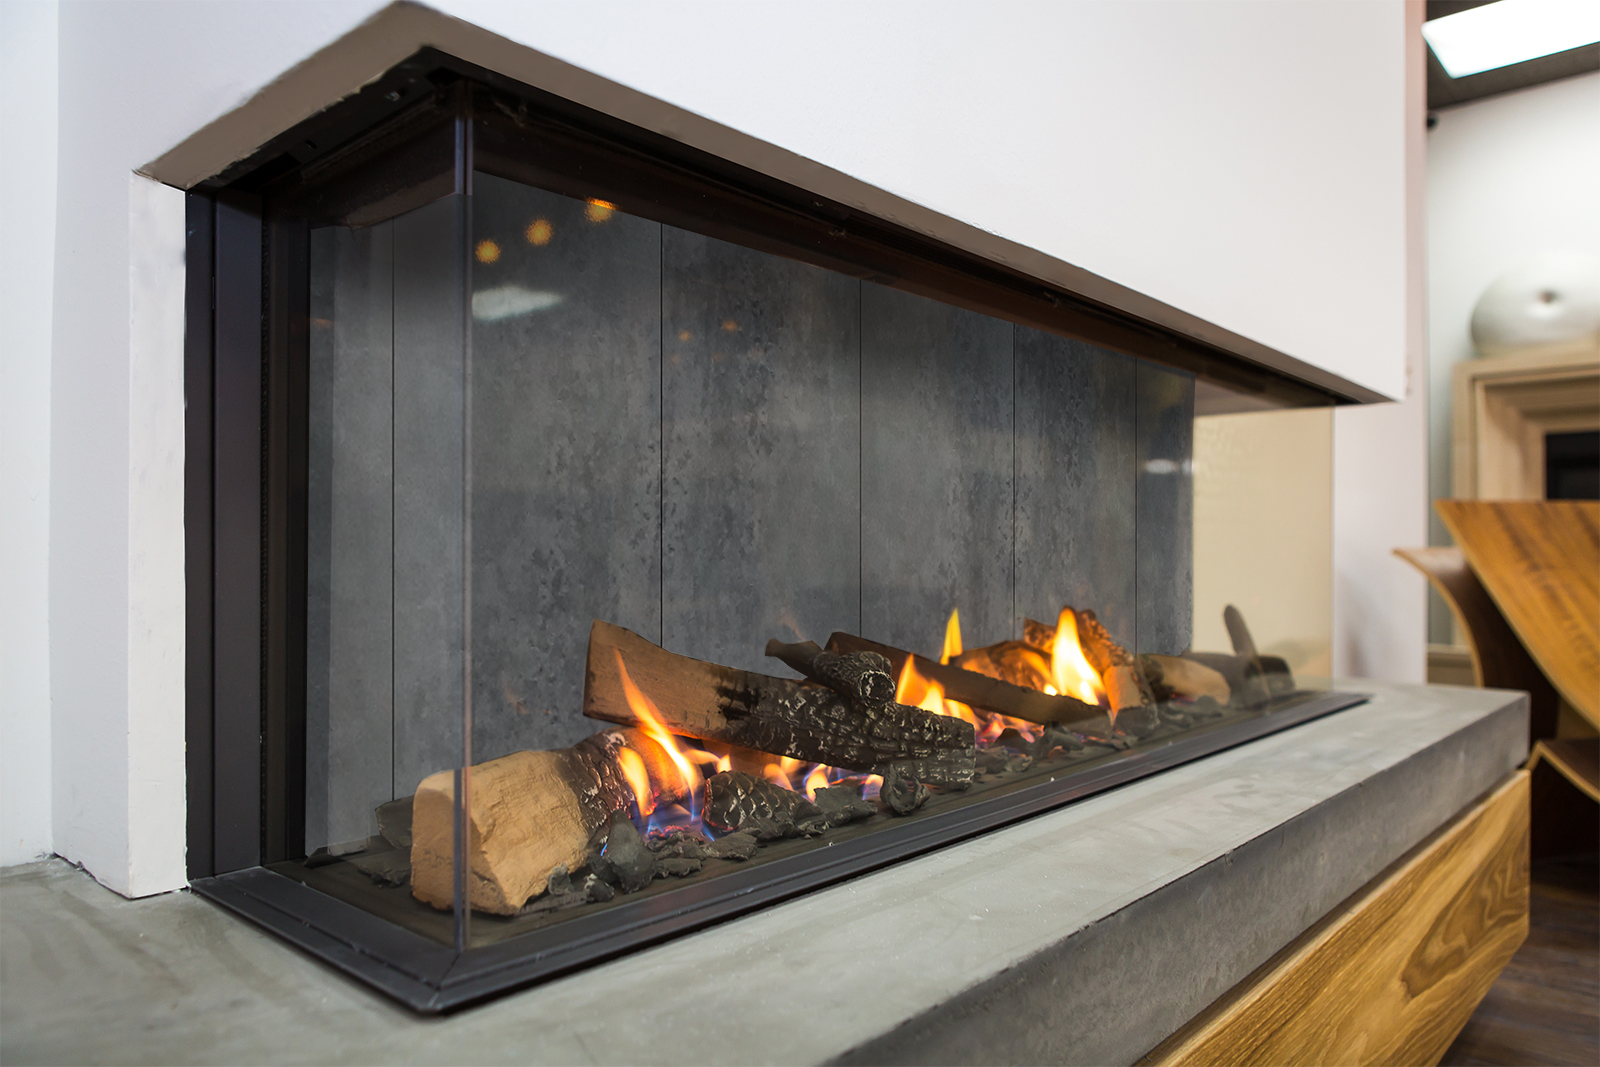 direct vent fireplace trisore140 element4 natural gas fireplace liquid propane fireplace modern fireplace modern design contemporary - Modern Fireplace Design Ideas